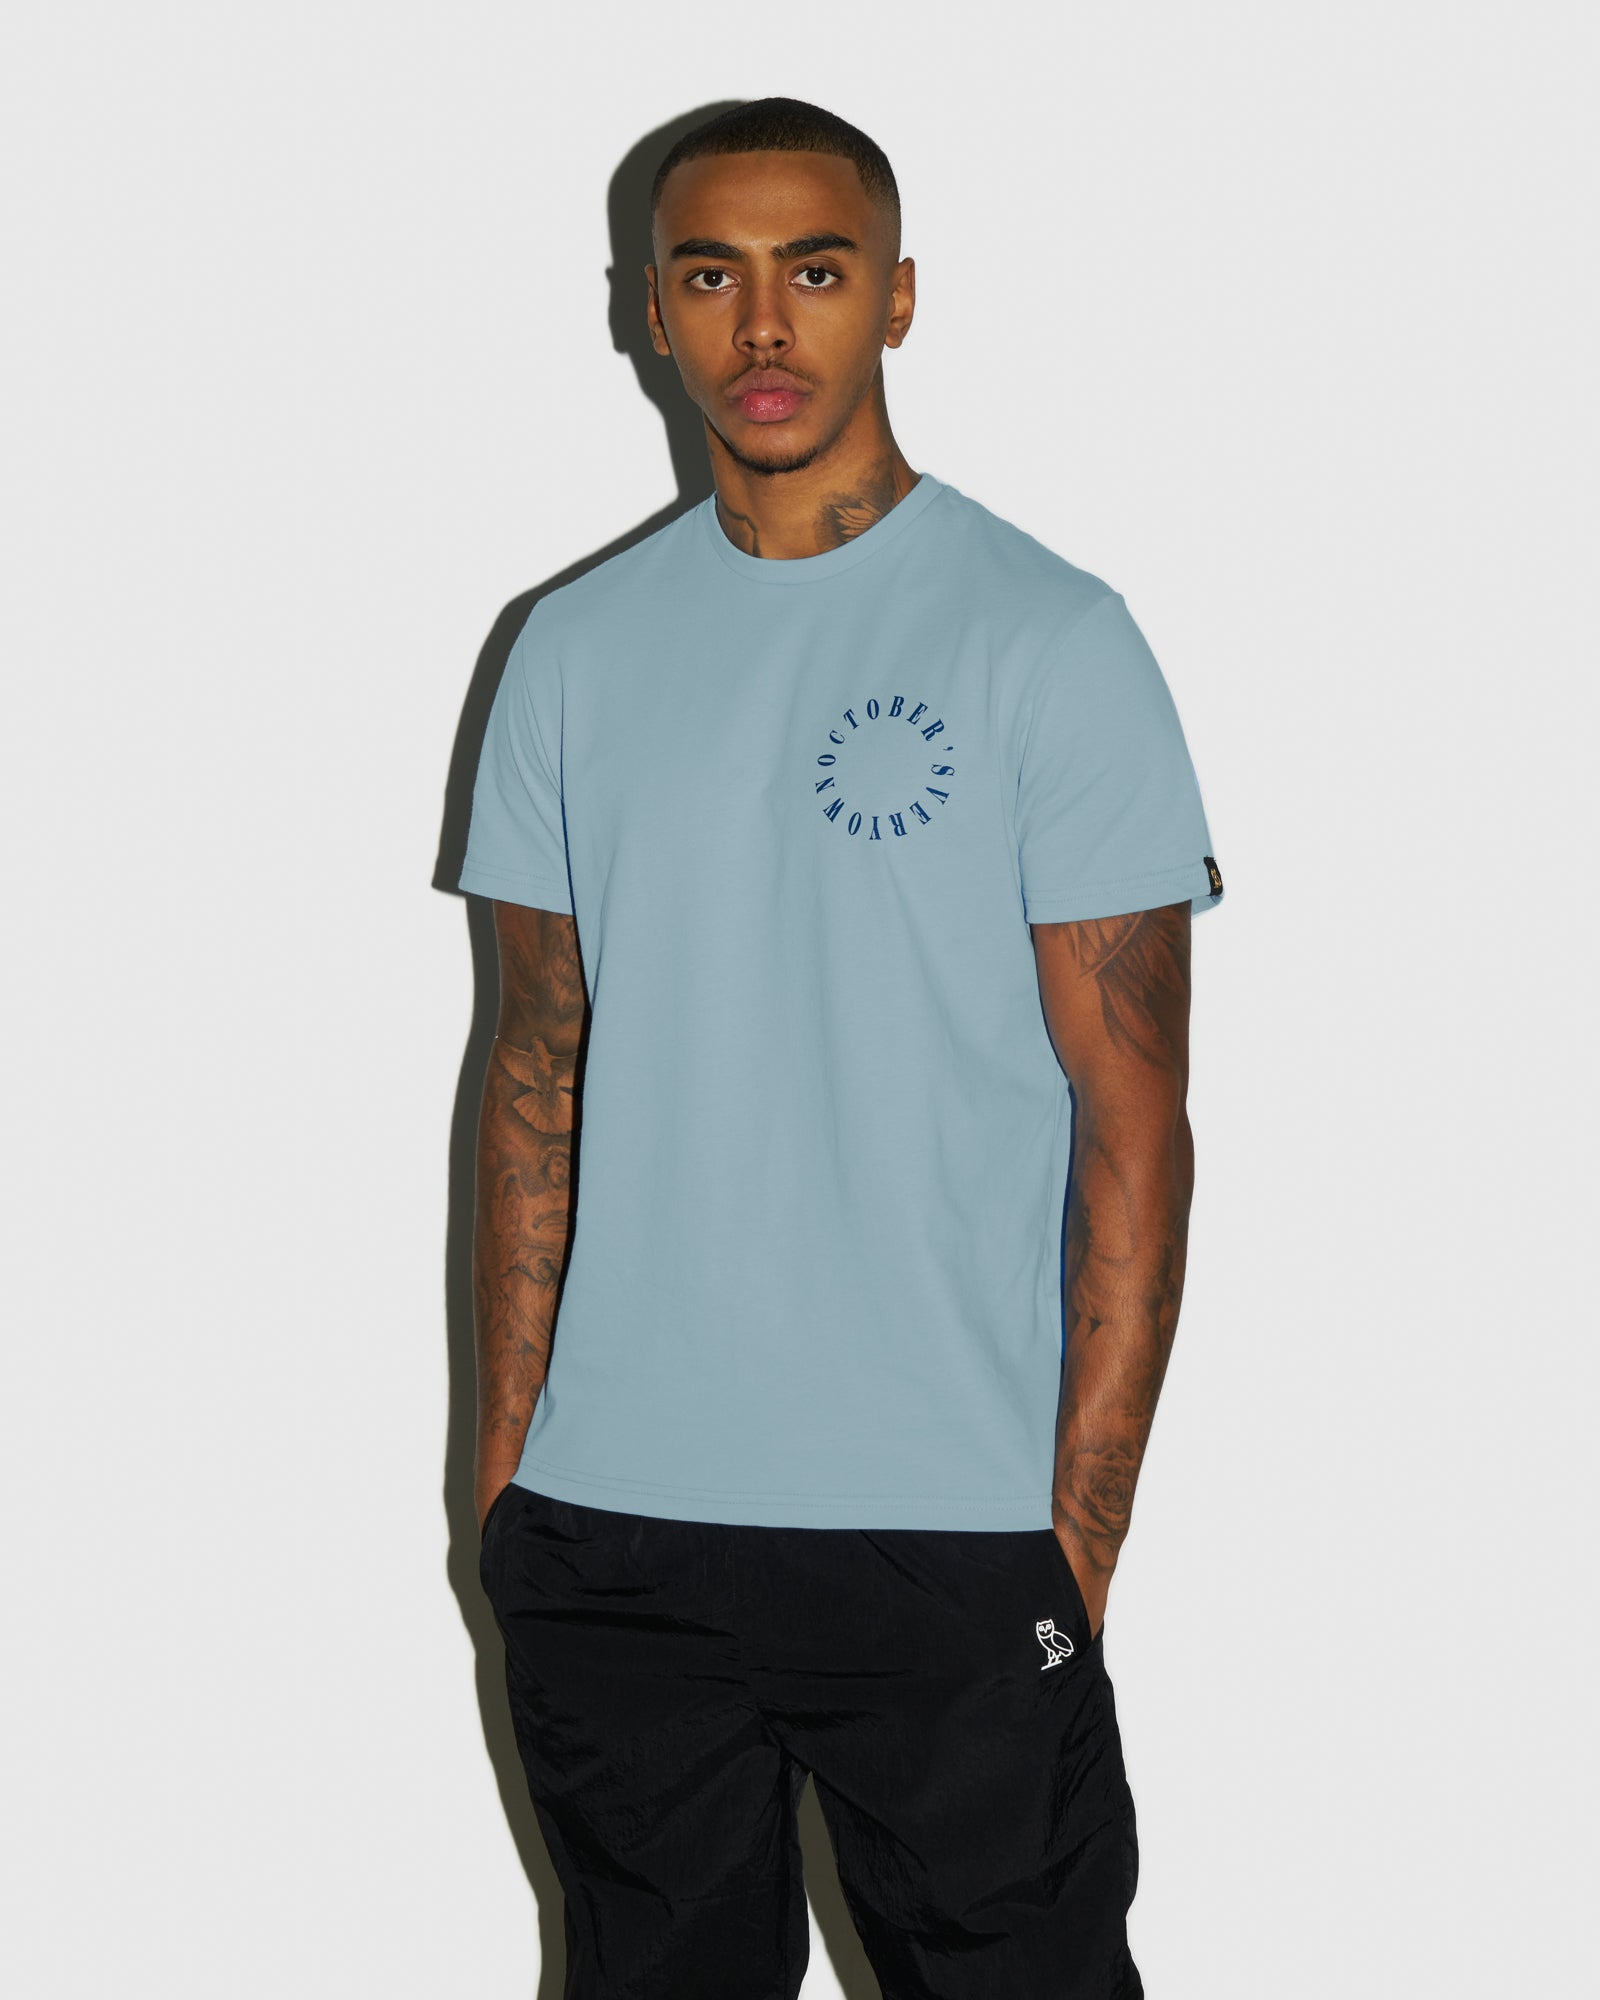 CIRCLE WORDMARK T-SHIRT - SKY BLUE IMAGE #2